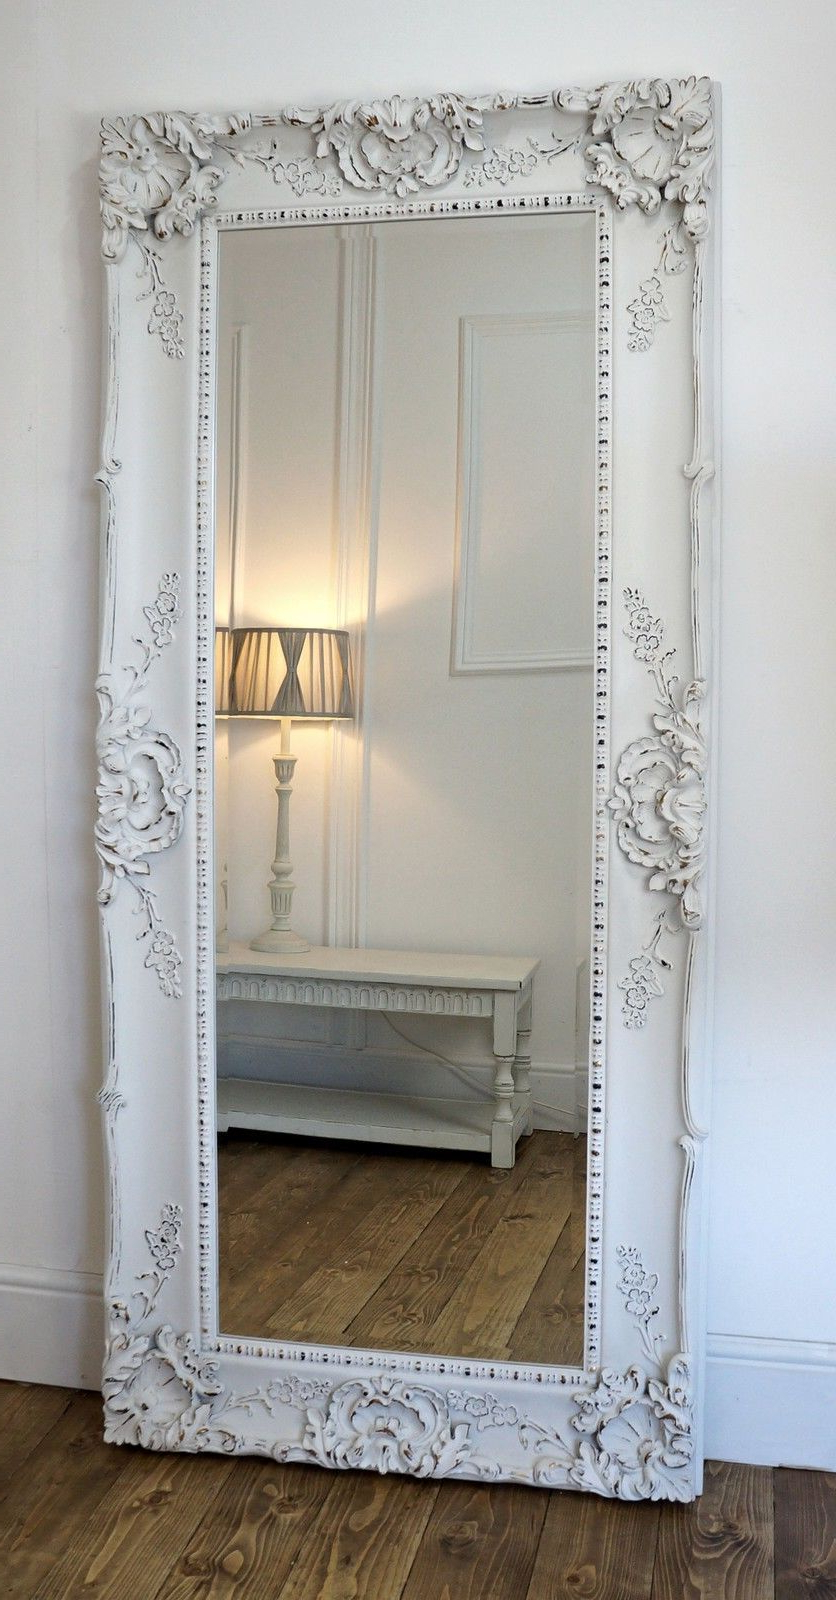 "Grasmere White Ornate Rectangle Antique Wall Mirror 31"" X 69"" X Intended For Well Known Large Vintage Wall Mirrors (View 14 of 20)"